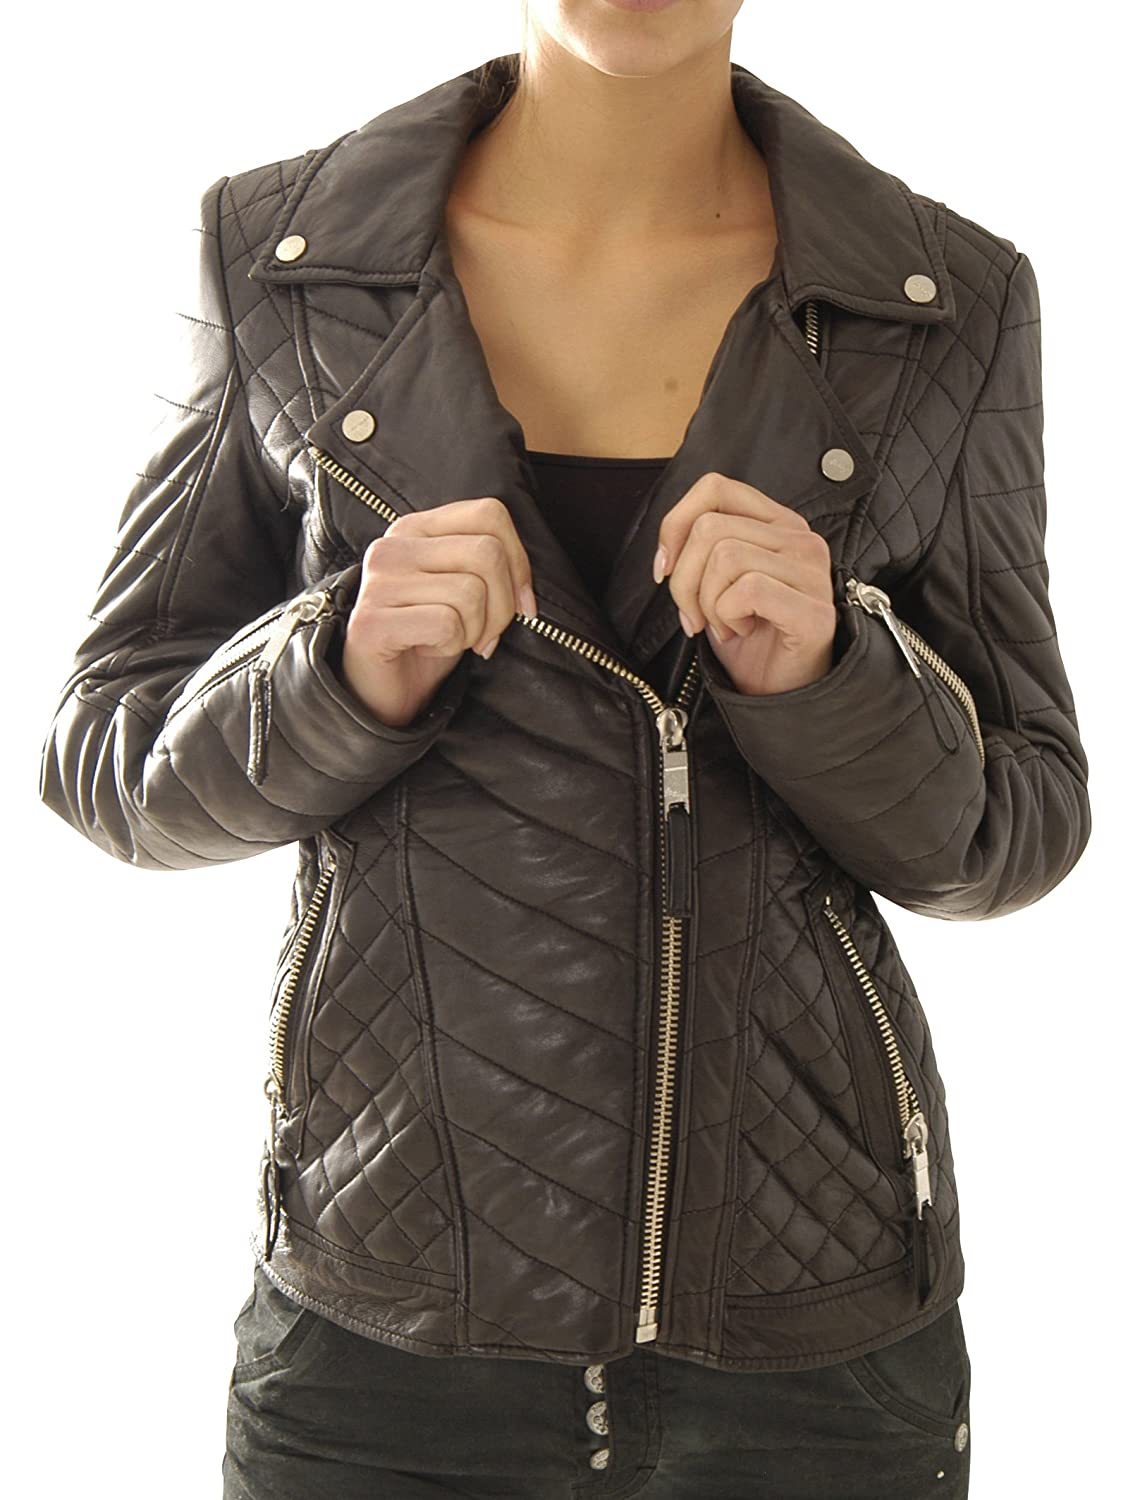 Maze Damen Jacke Hillaby_1 Mj1-53-Hillaby_1-1000